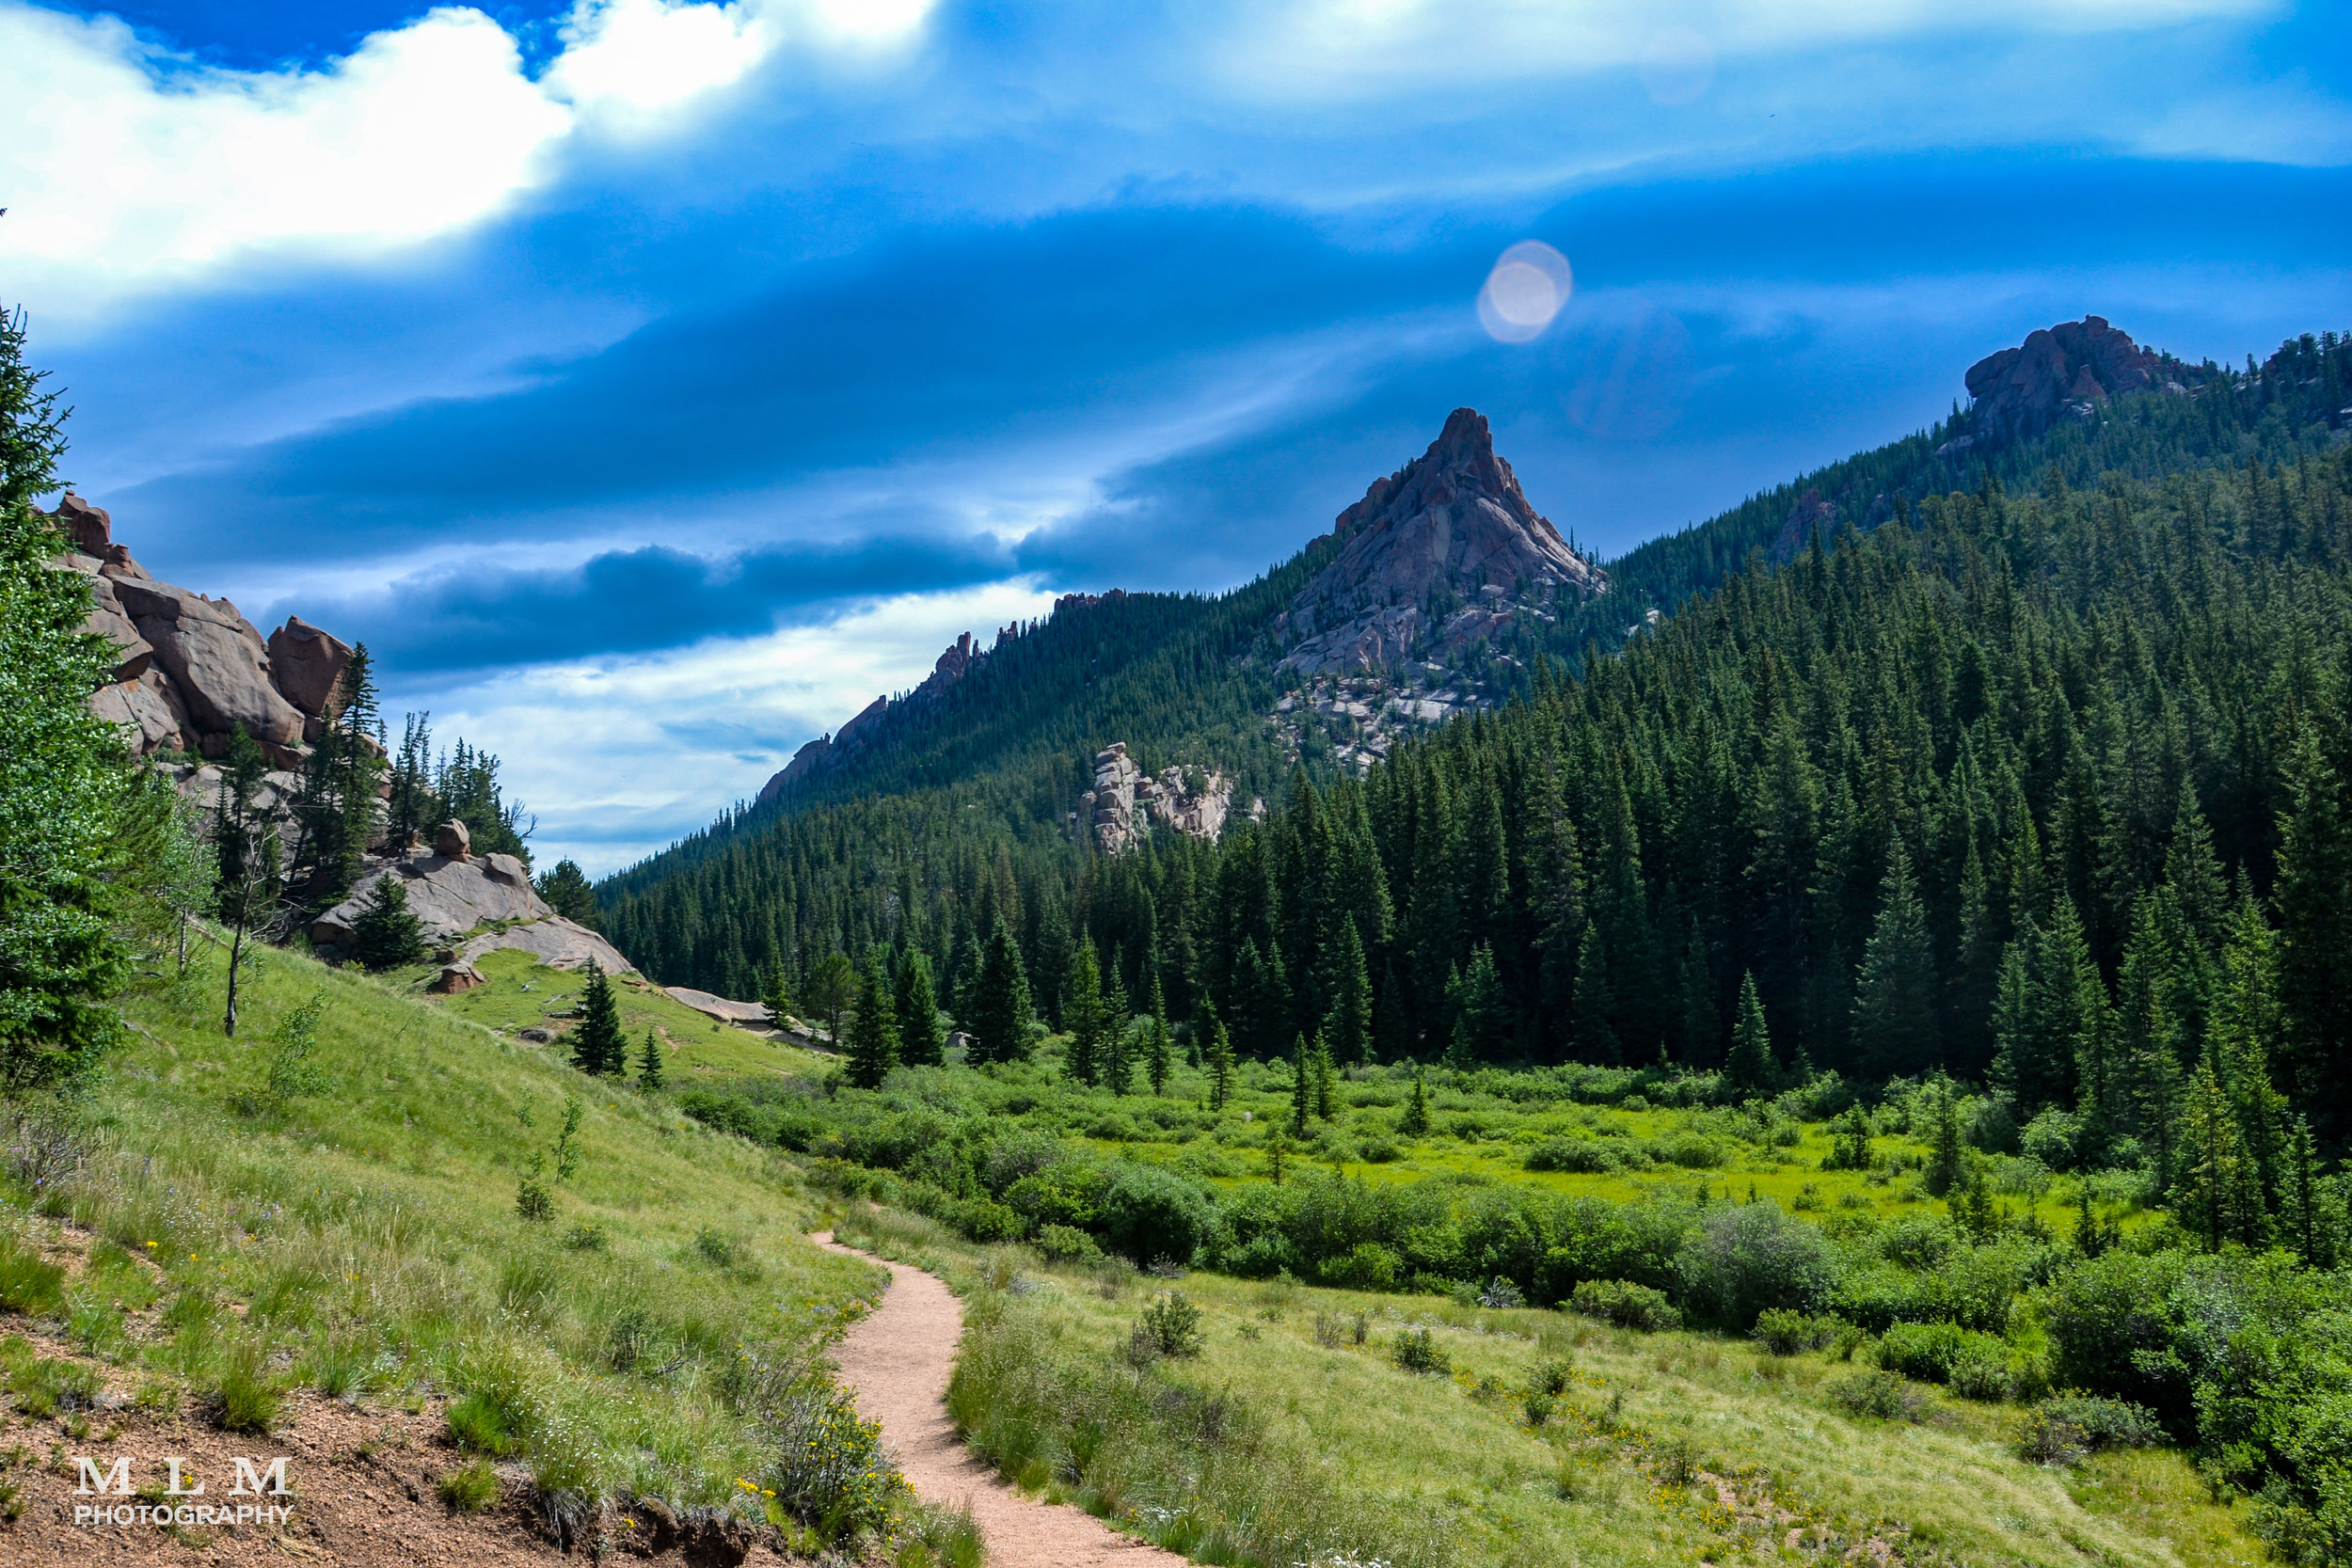 The Crags - The Crags trail is a simple hike with a great approach through lush meadows, Aspen and Pine ending at a rocky outcropping with amazing views.